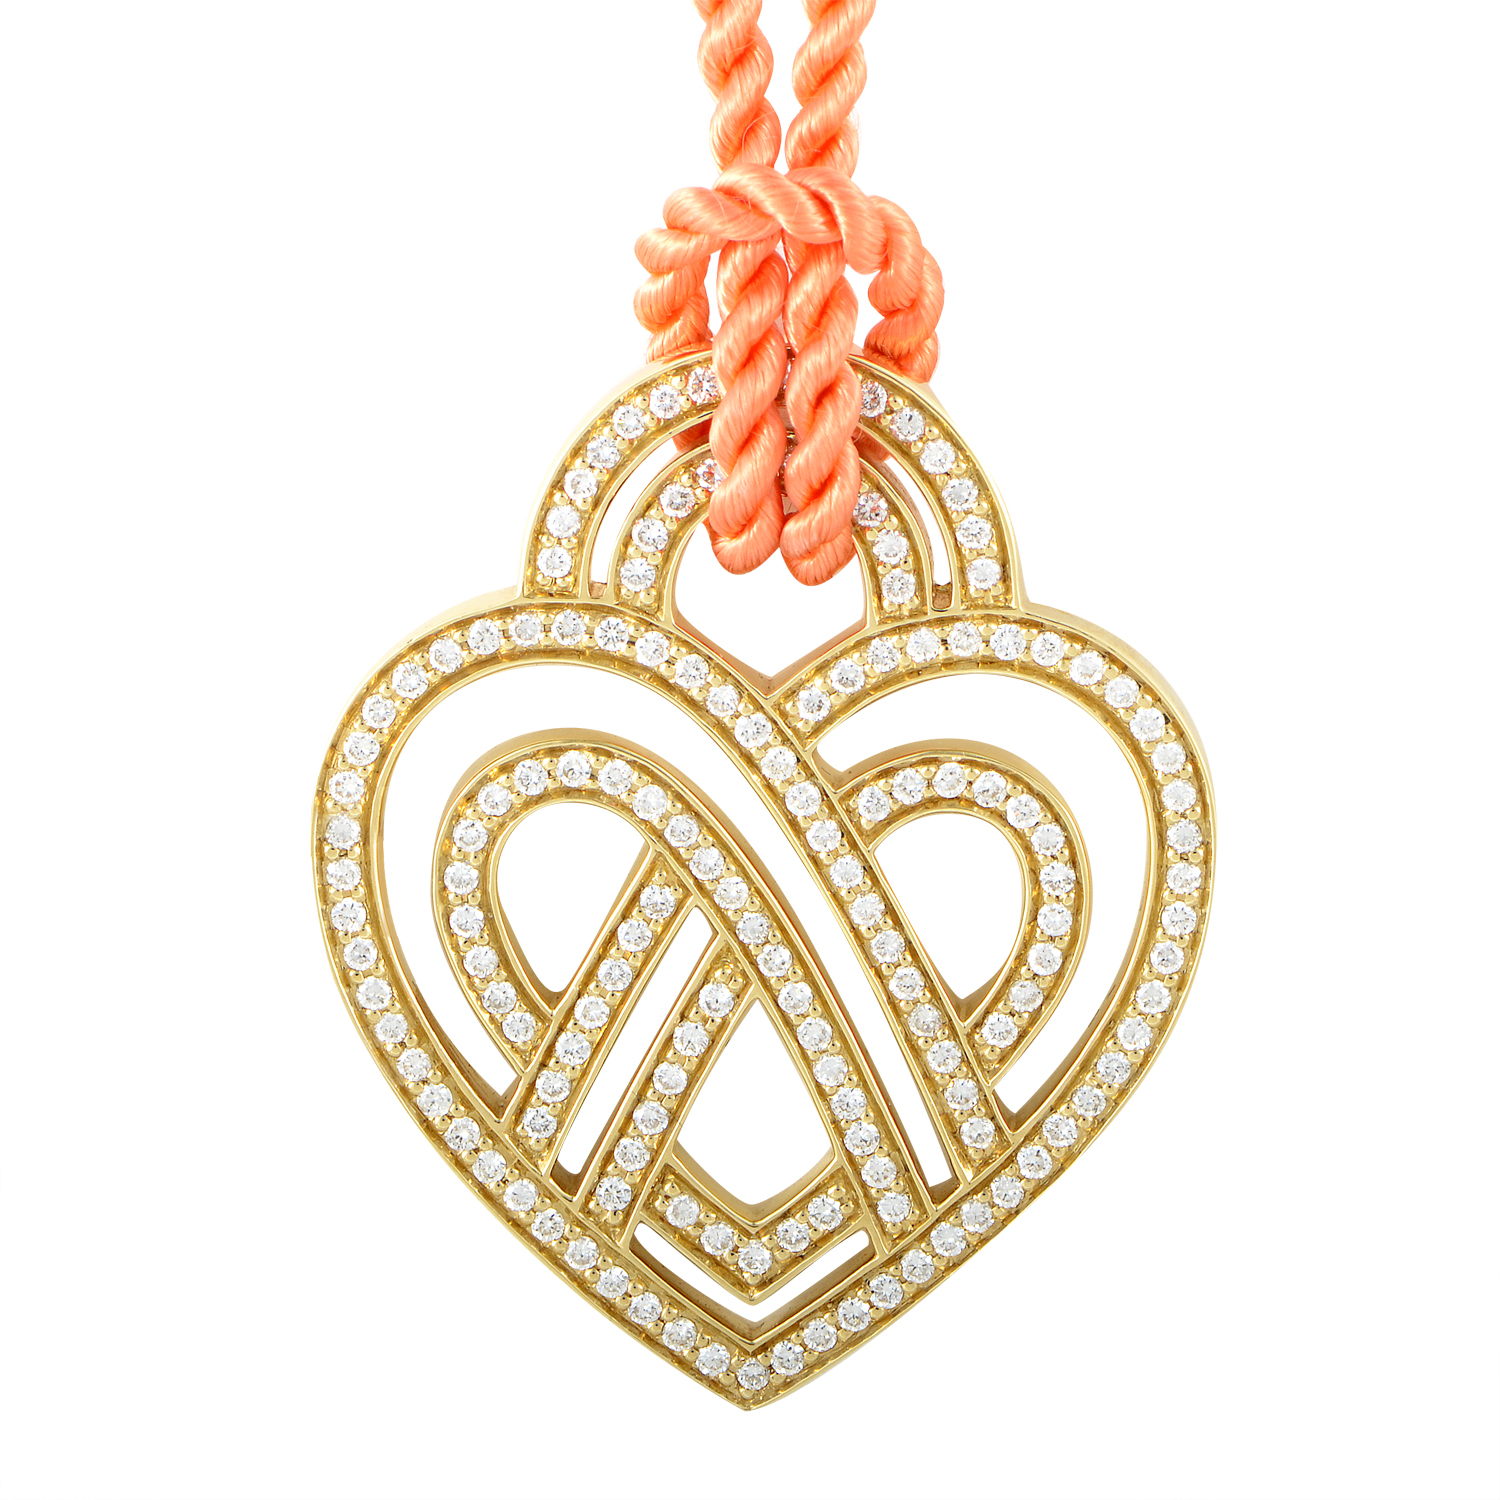 18K Yellow Gold Diamond Heart Pendant & Cord Necklace PPC8554ORG